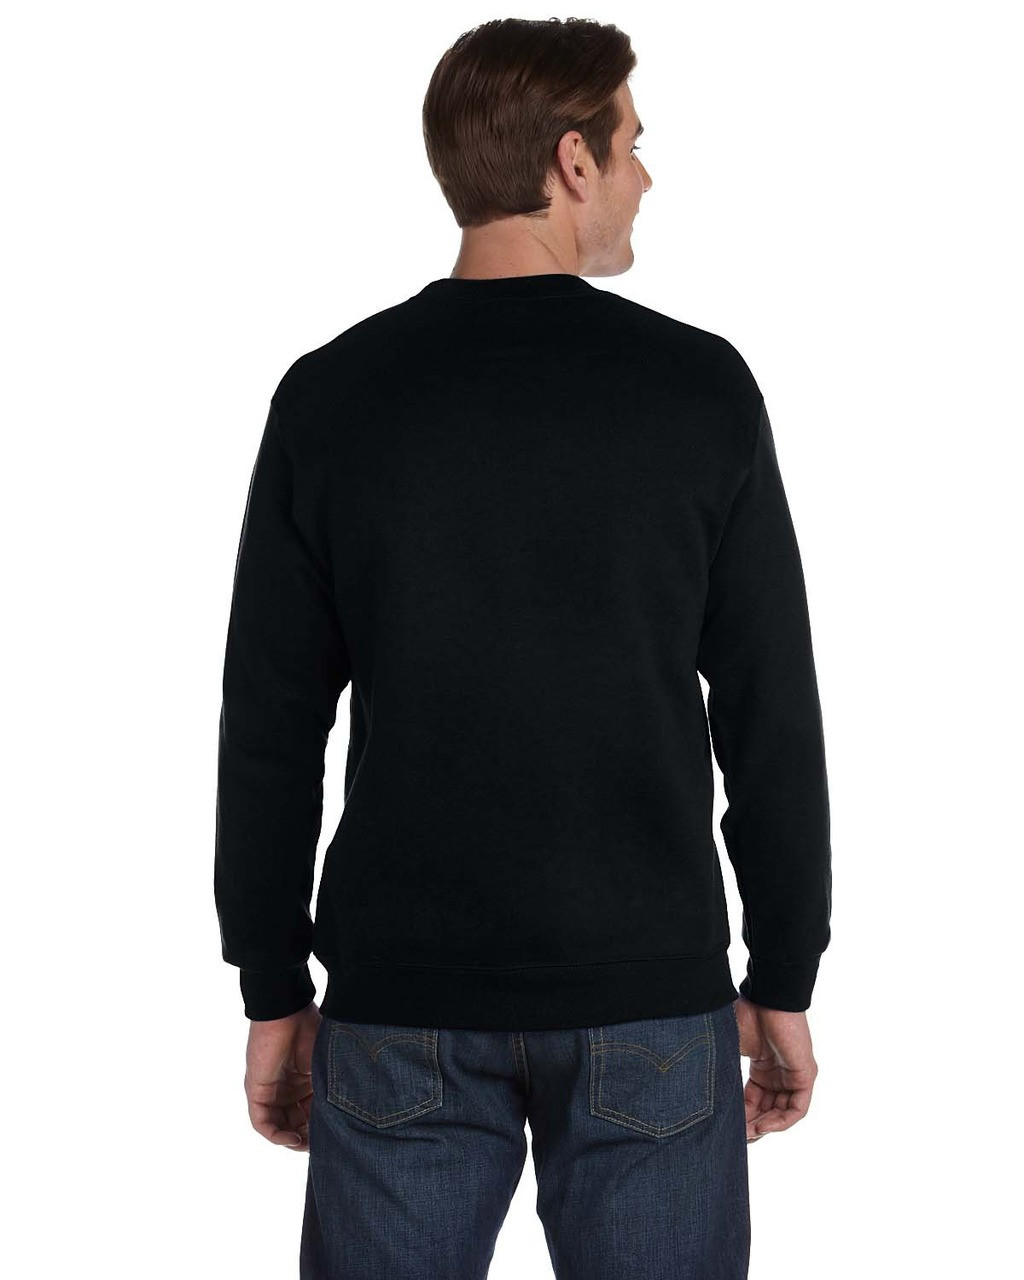 Black - G120 Gildan DryBlend® Adult 15 oz./lin. yd., 50/50 Fleece Crewneck Sweatshirt | BlankClothing.ca